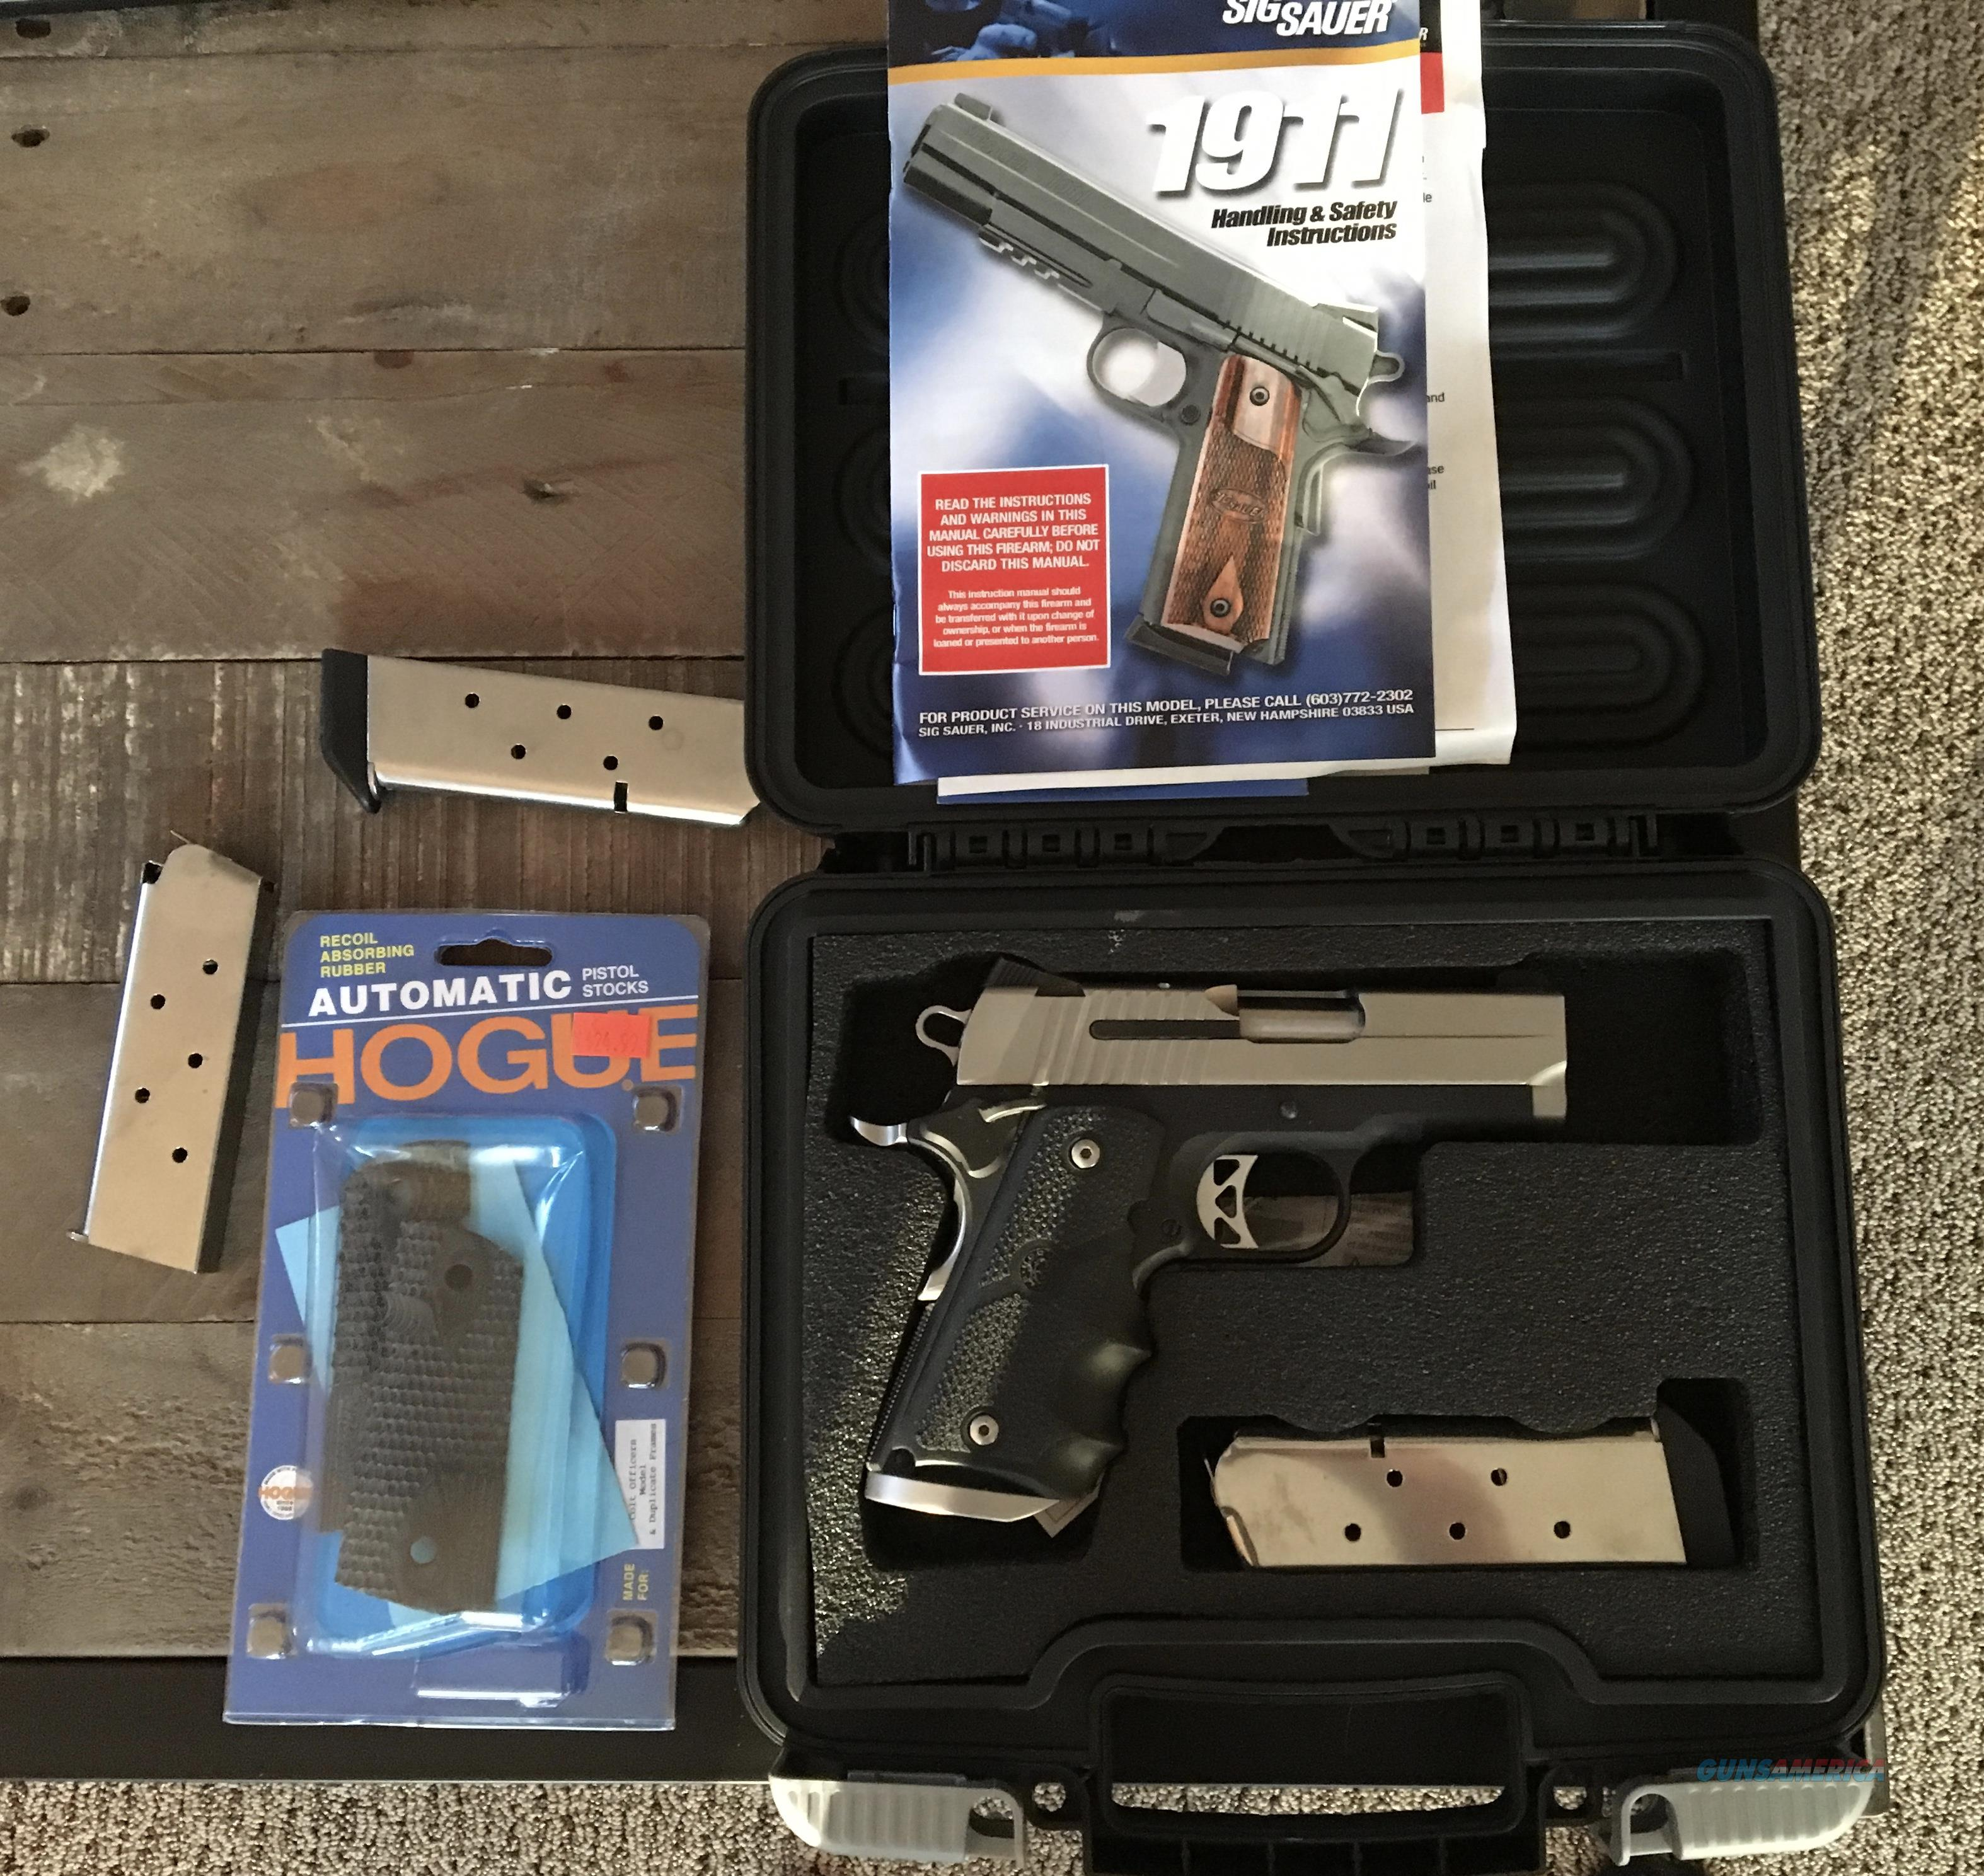 1911 model SIG SAUER stainless steel  45 caliber compact with custom grips  and dove tail/3 mags